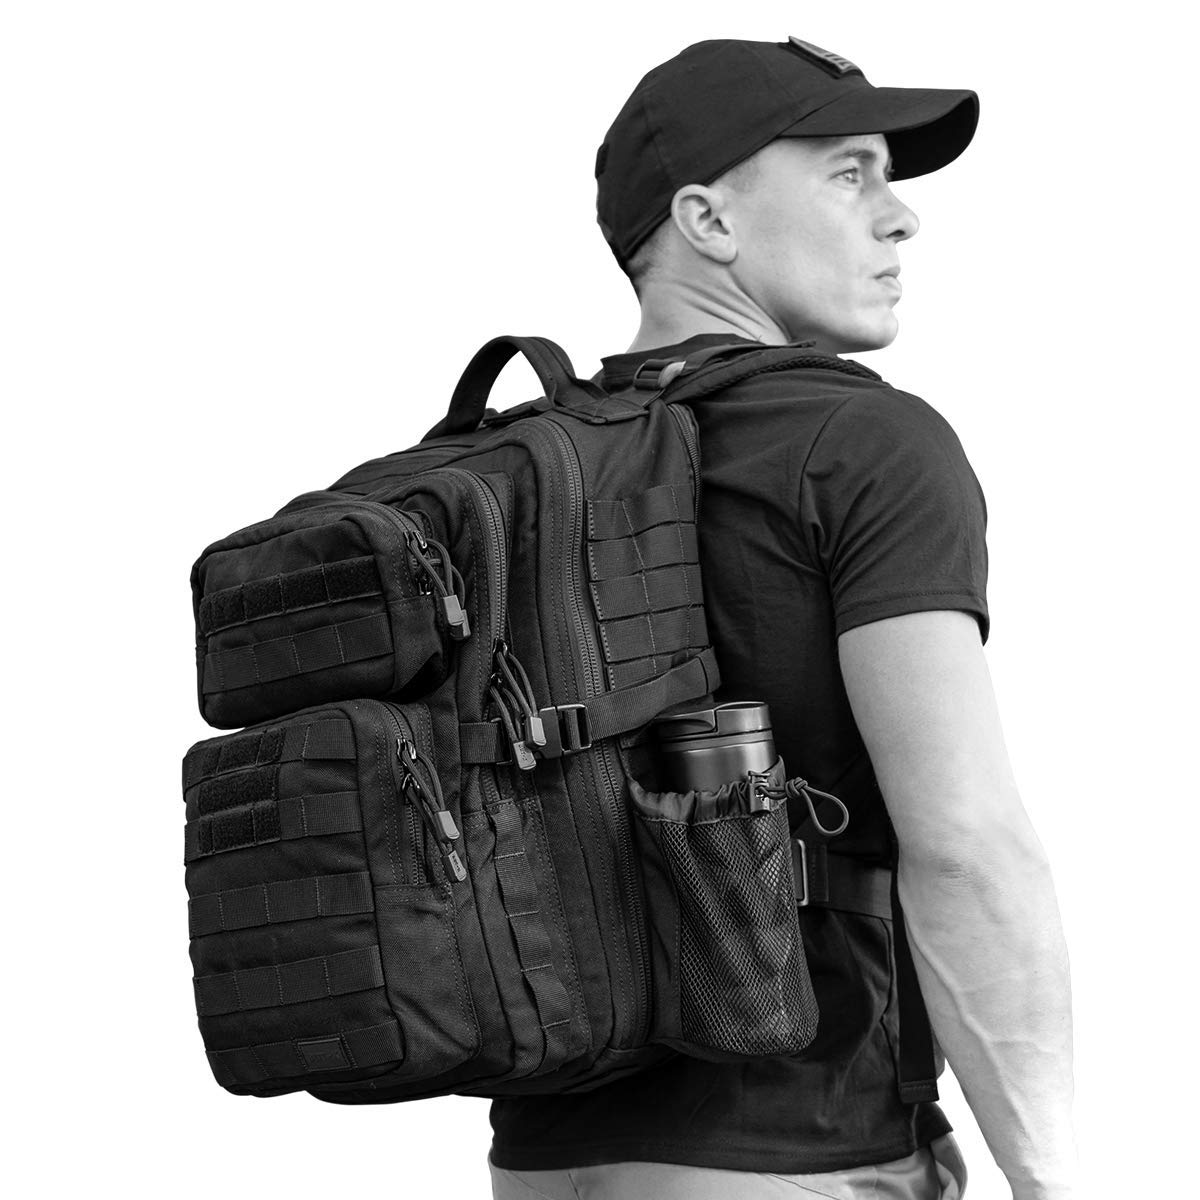 SERGEANT Military Tactical Backpack, 1050D Ballistic Nylon, YKK Zippers, UTX Buckles, Molle. 35L 1-Day, Small Size, Assault Pack, Bug Out Bag, Rucksack, Daypack, Range, Camping, Hiking, Hunting.